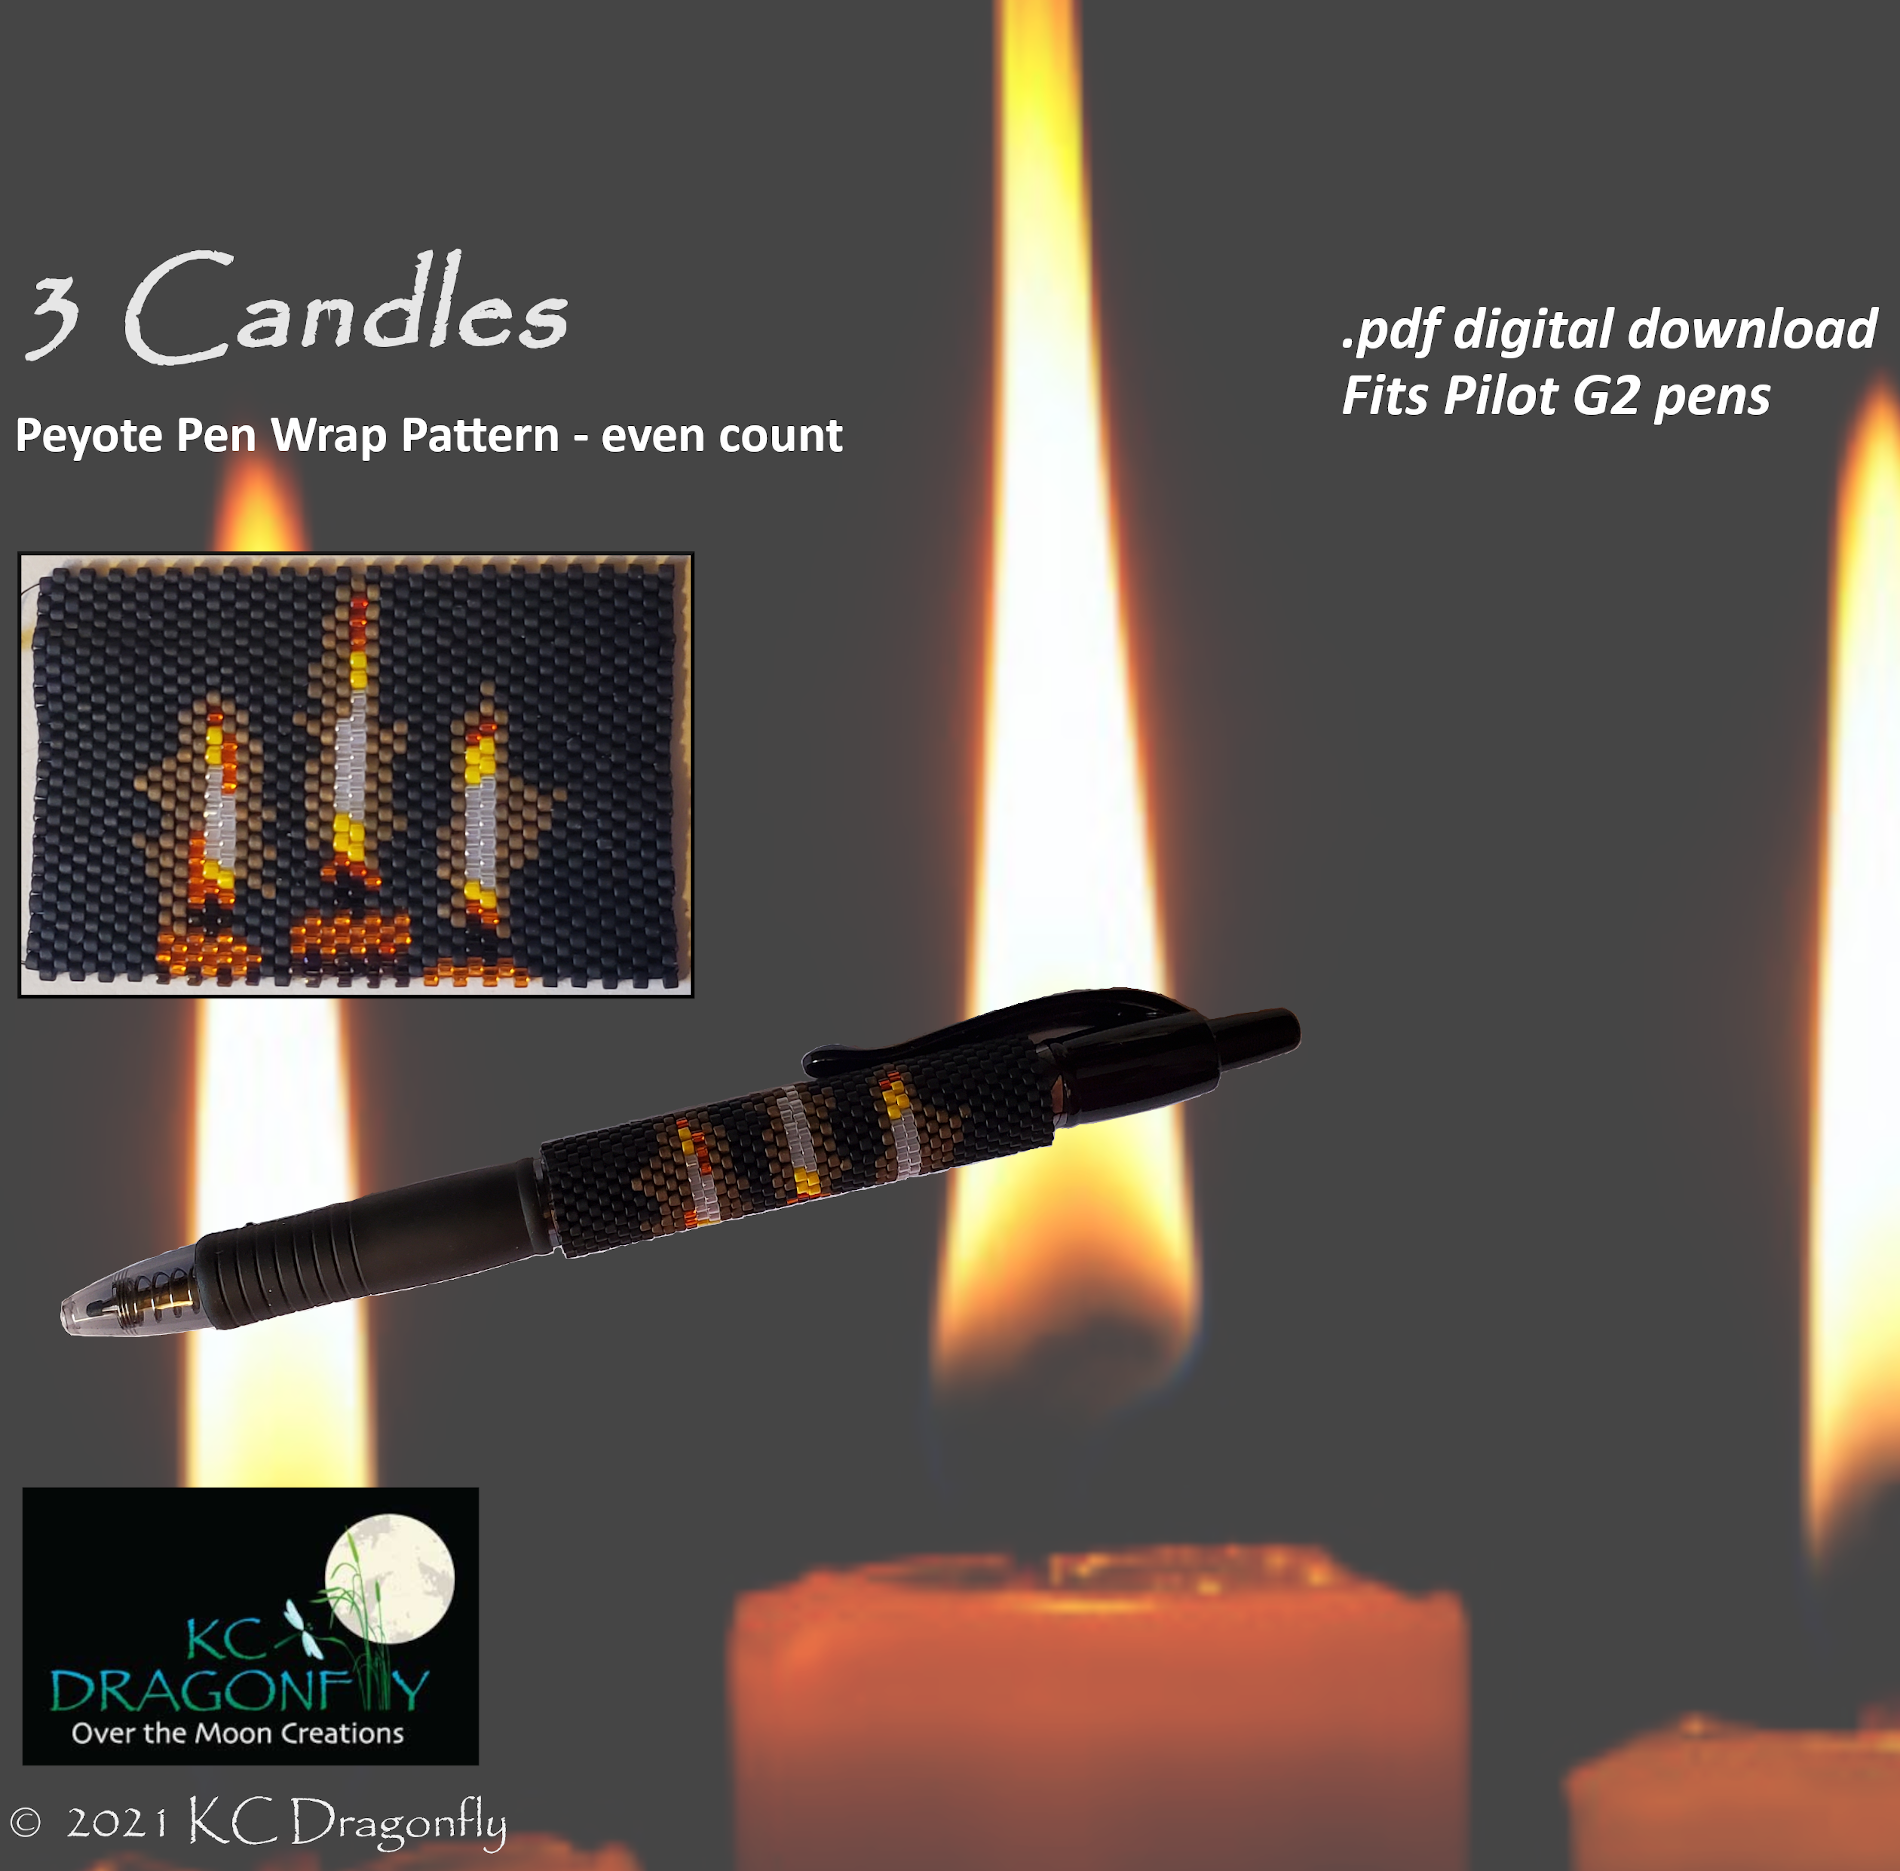 KC dragonfly - Etsy Listing - 3 candles